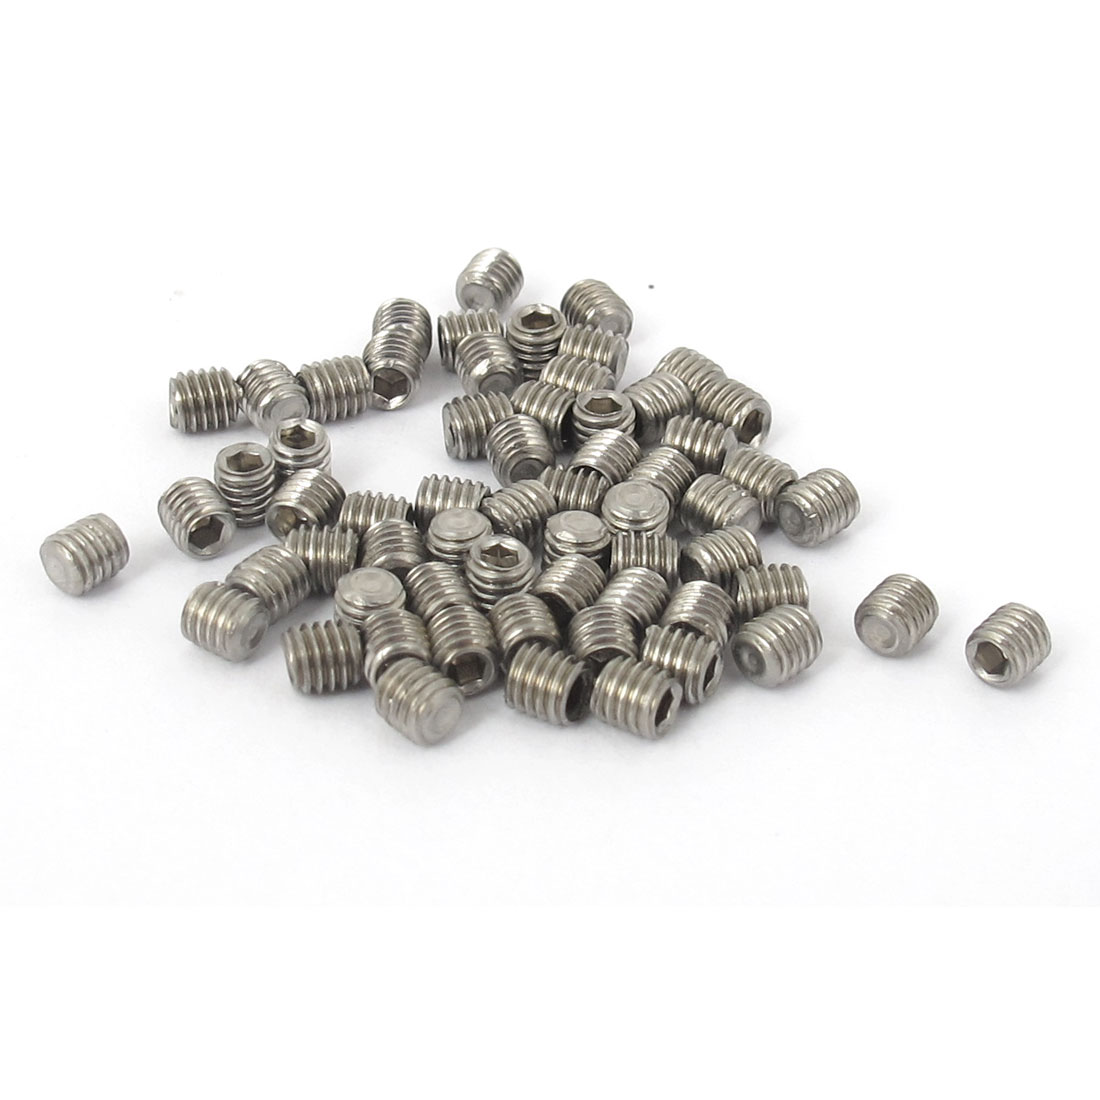 M3x3mm Stainless Steel Hex Socket Set Cap Point Grub Screws Silver Tone 50pcs